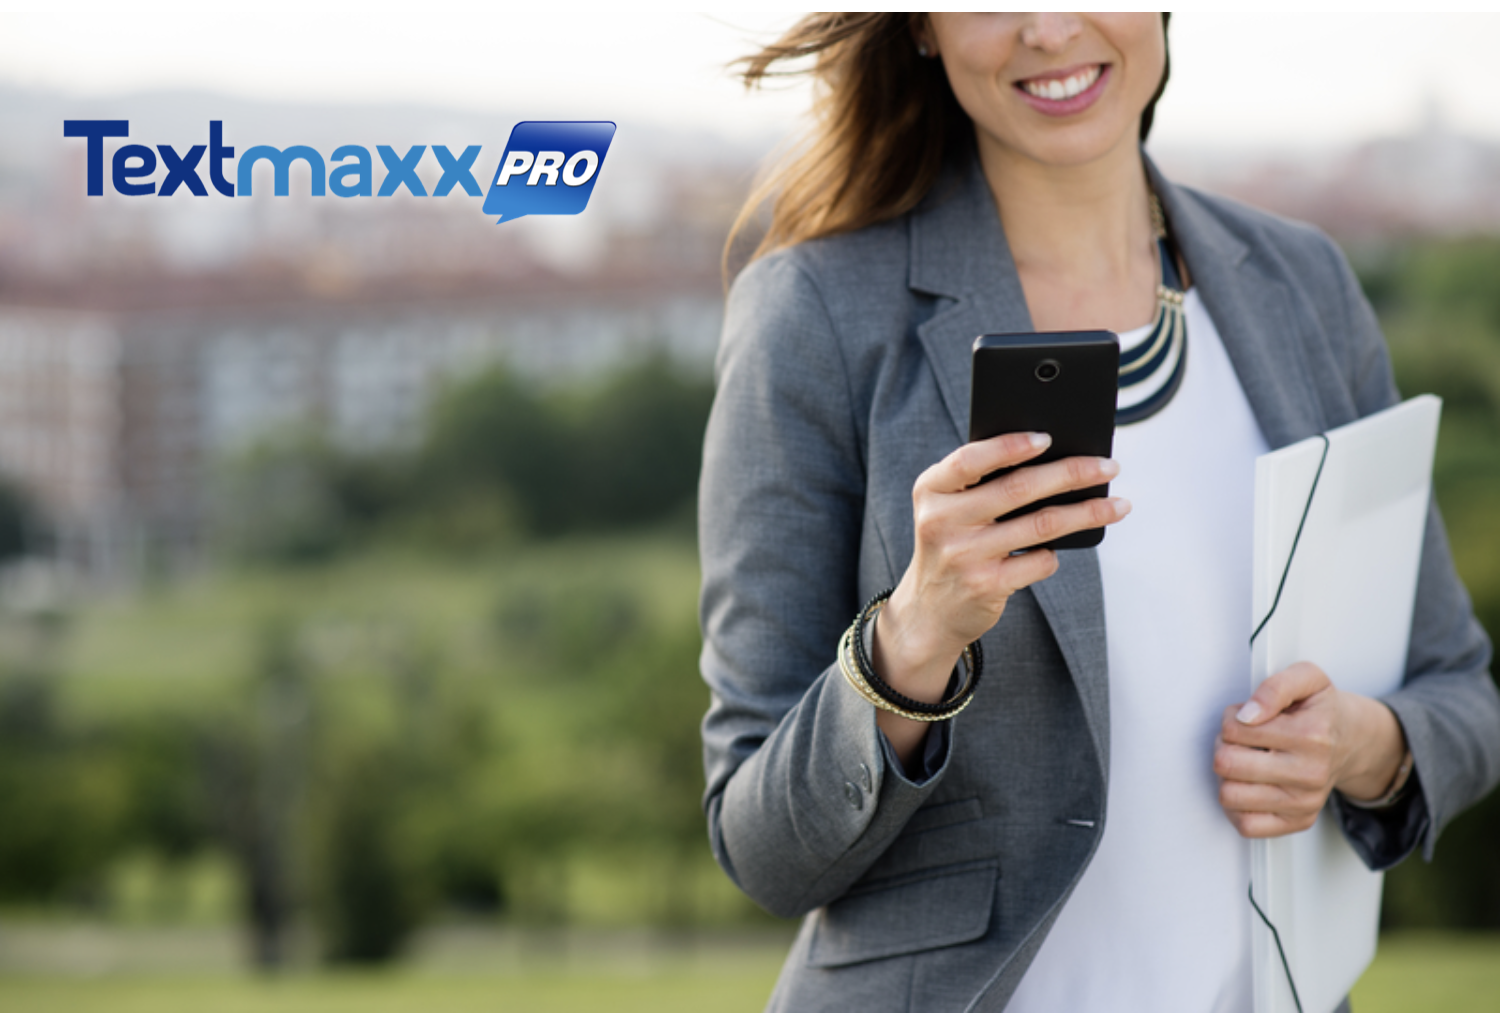 Top 3 Reasons To Text-Enable Your Business